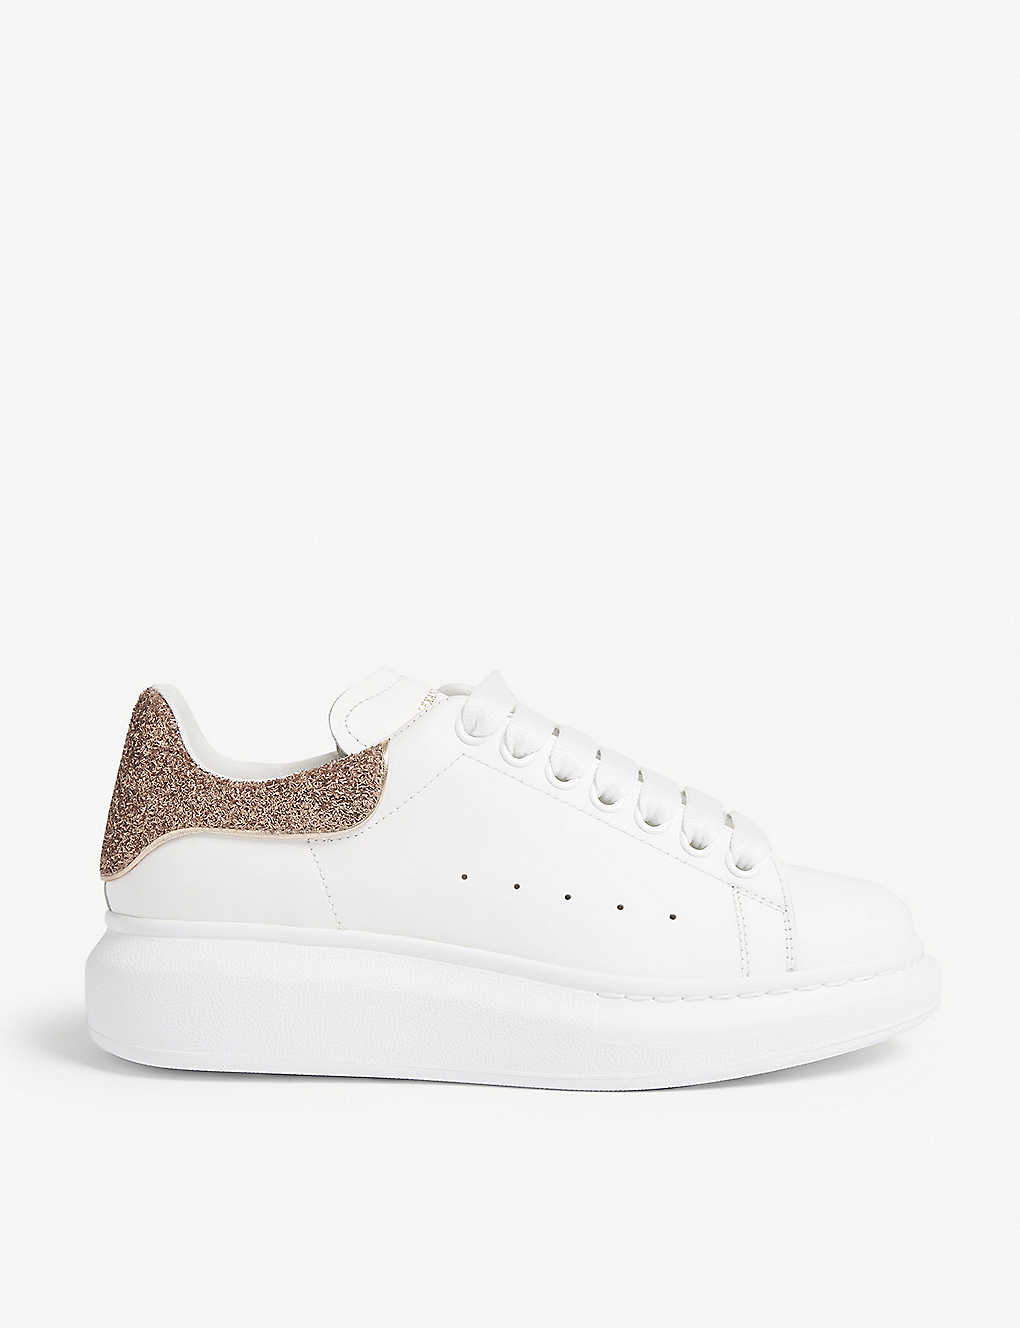 75a07f94be2e ALEXANDER MCQUEEN - Runway leather trainers